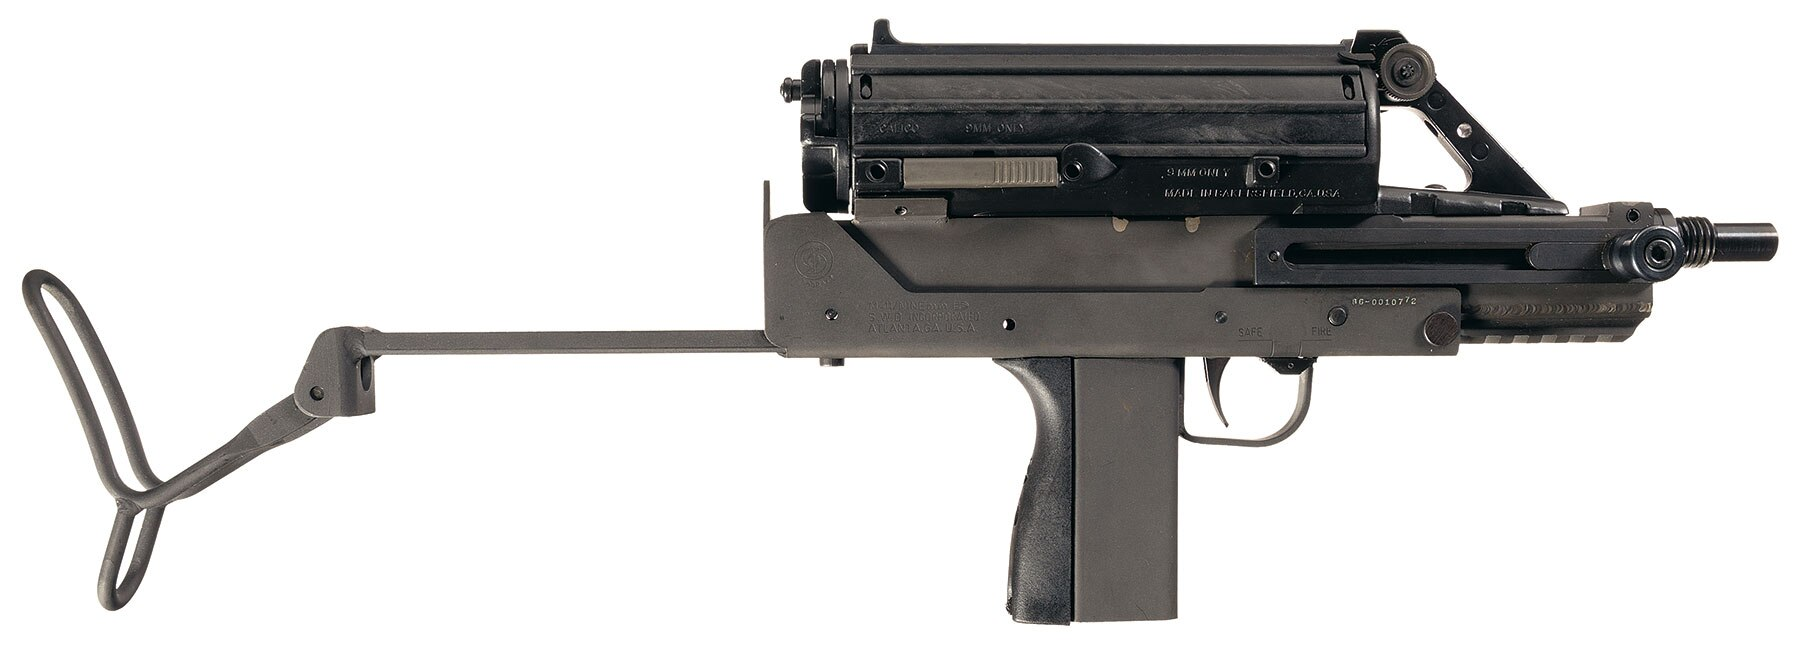 And now for something completely odd, how about an SWD Cobray M-11 subgun that has been converted to fire from a 50-round Calico Liberty helical magazine. Its just $6-9K.